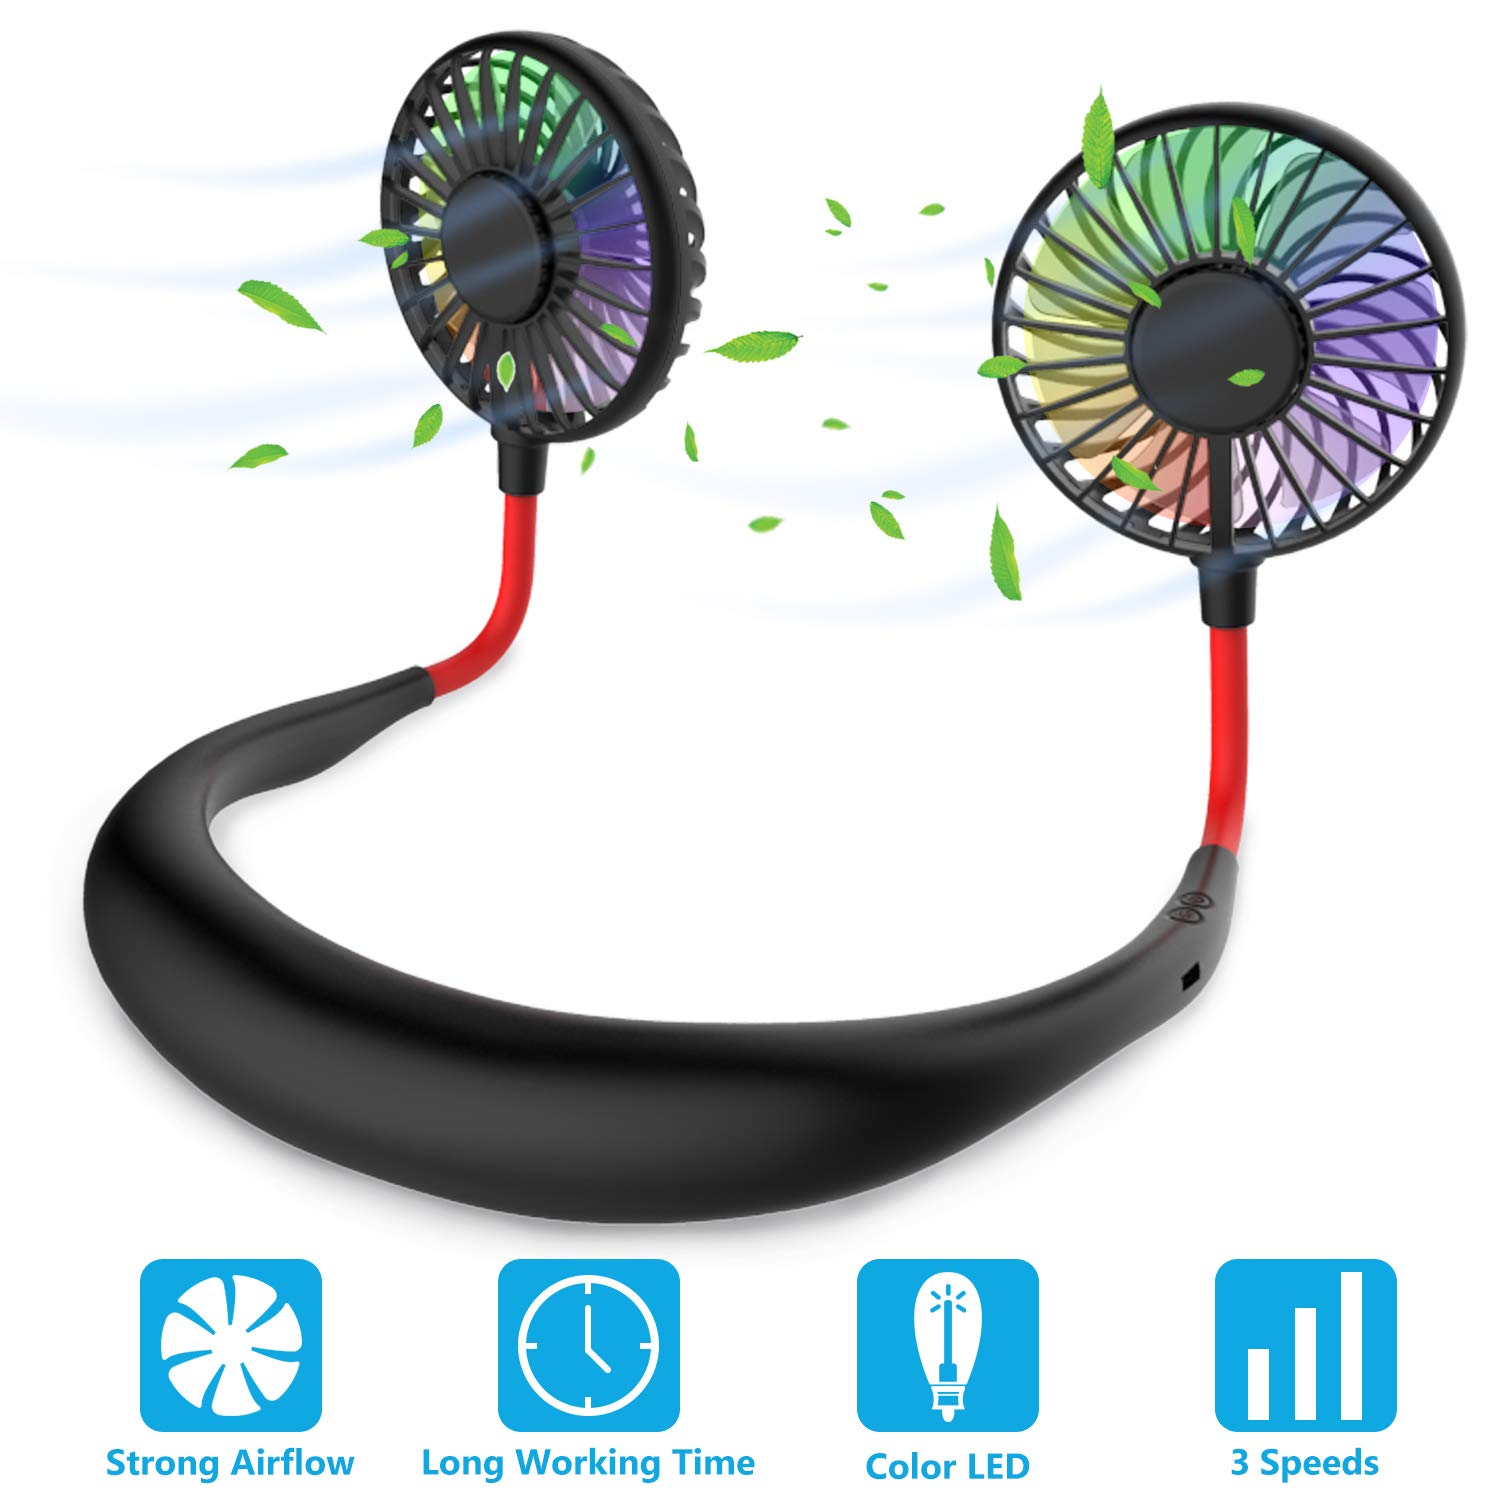 Hands Free Portable Neck Fan - Rechargeable Mini USB Personal Fan Battery Operated with 3 Level Air Flow, 7 LED Lights for Home Office Travel Indoor Outdoor (Black) by GULAKI